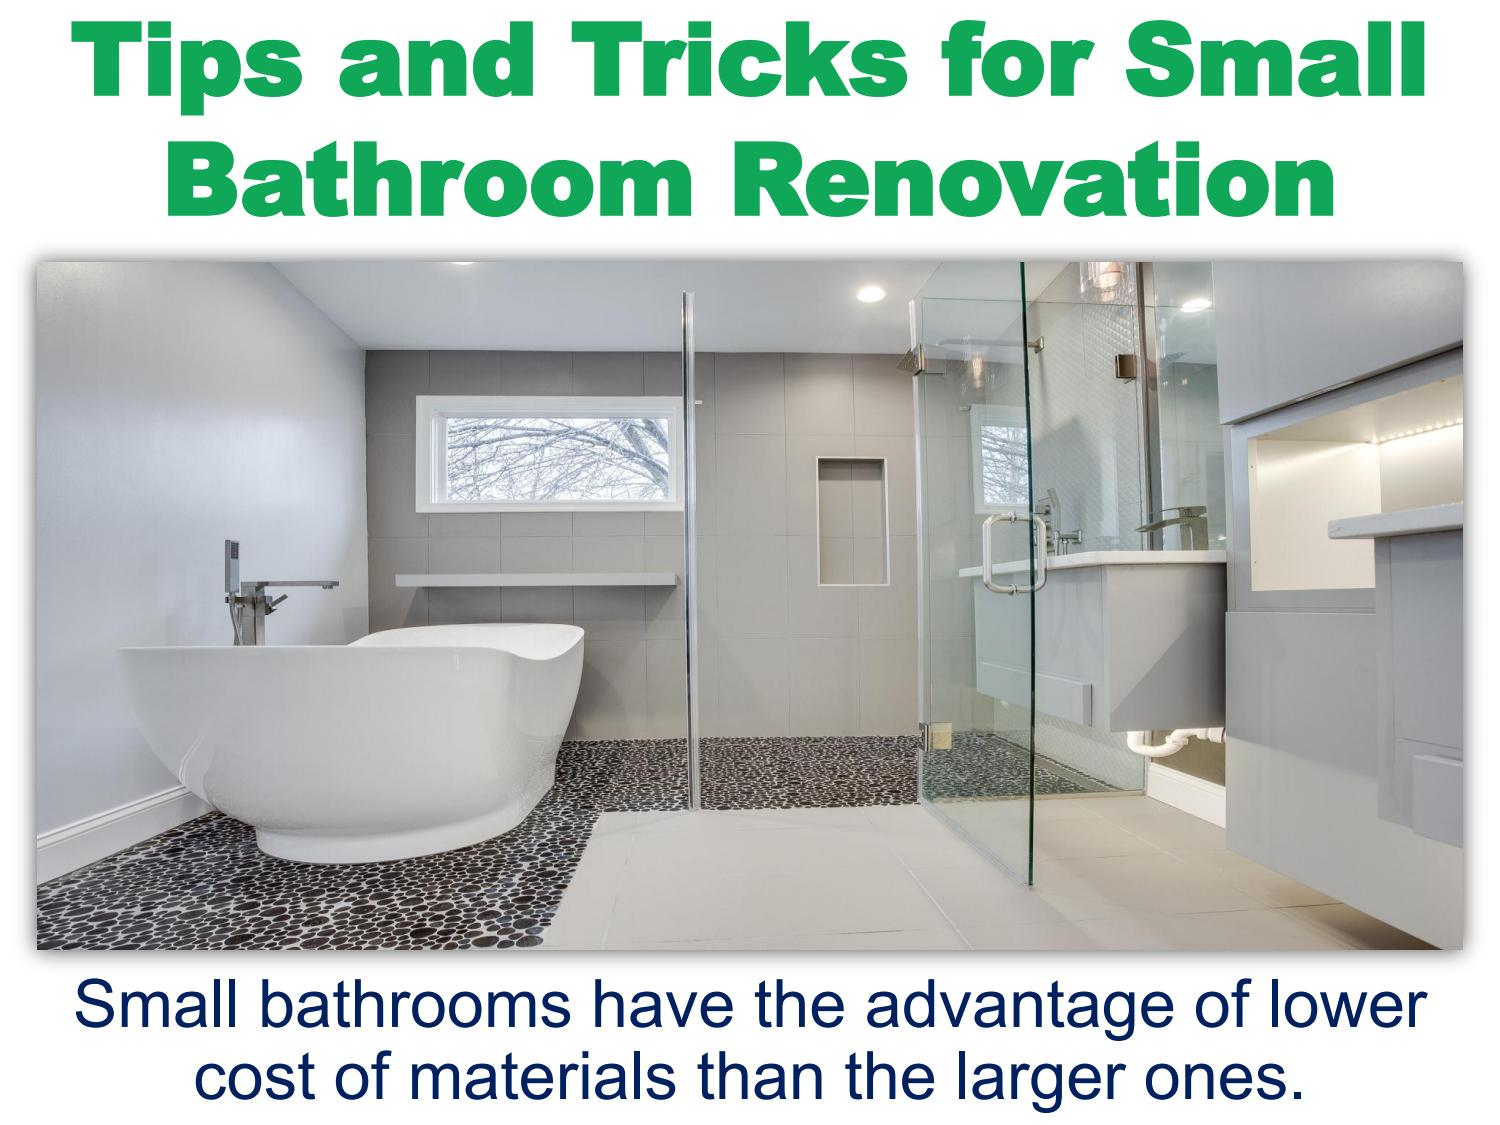 Tips And Tricks For Small Bathroom Renovation By Maria